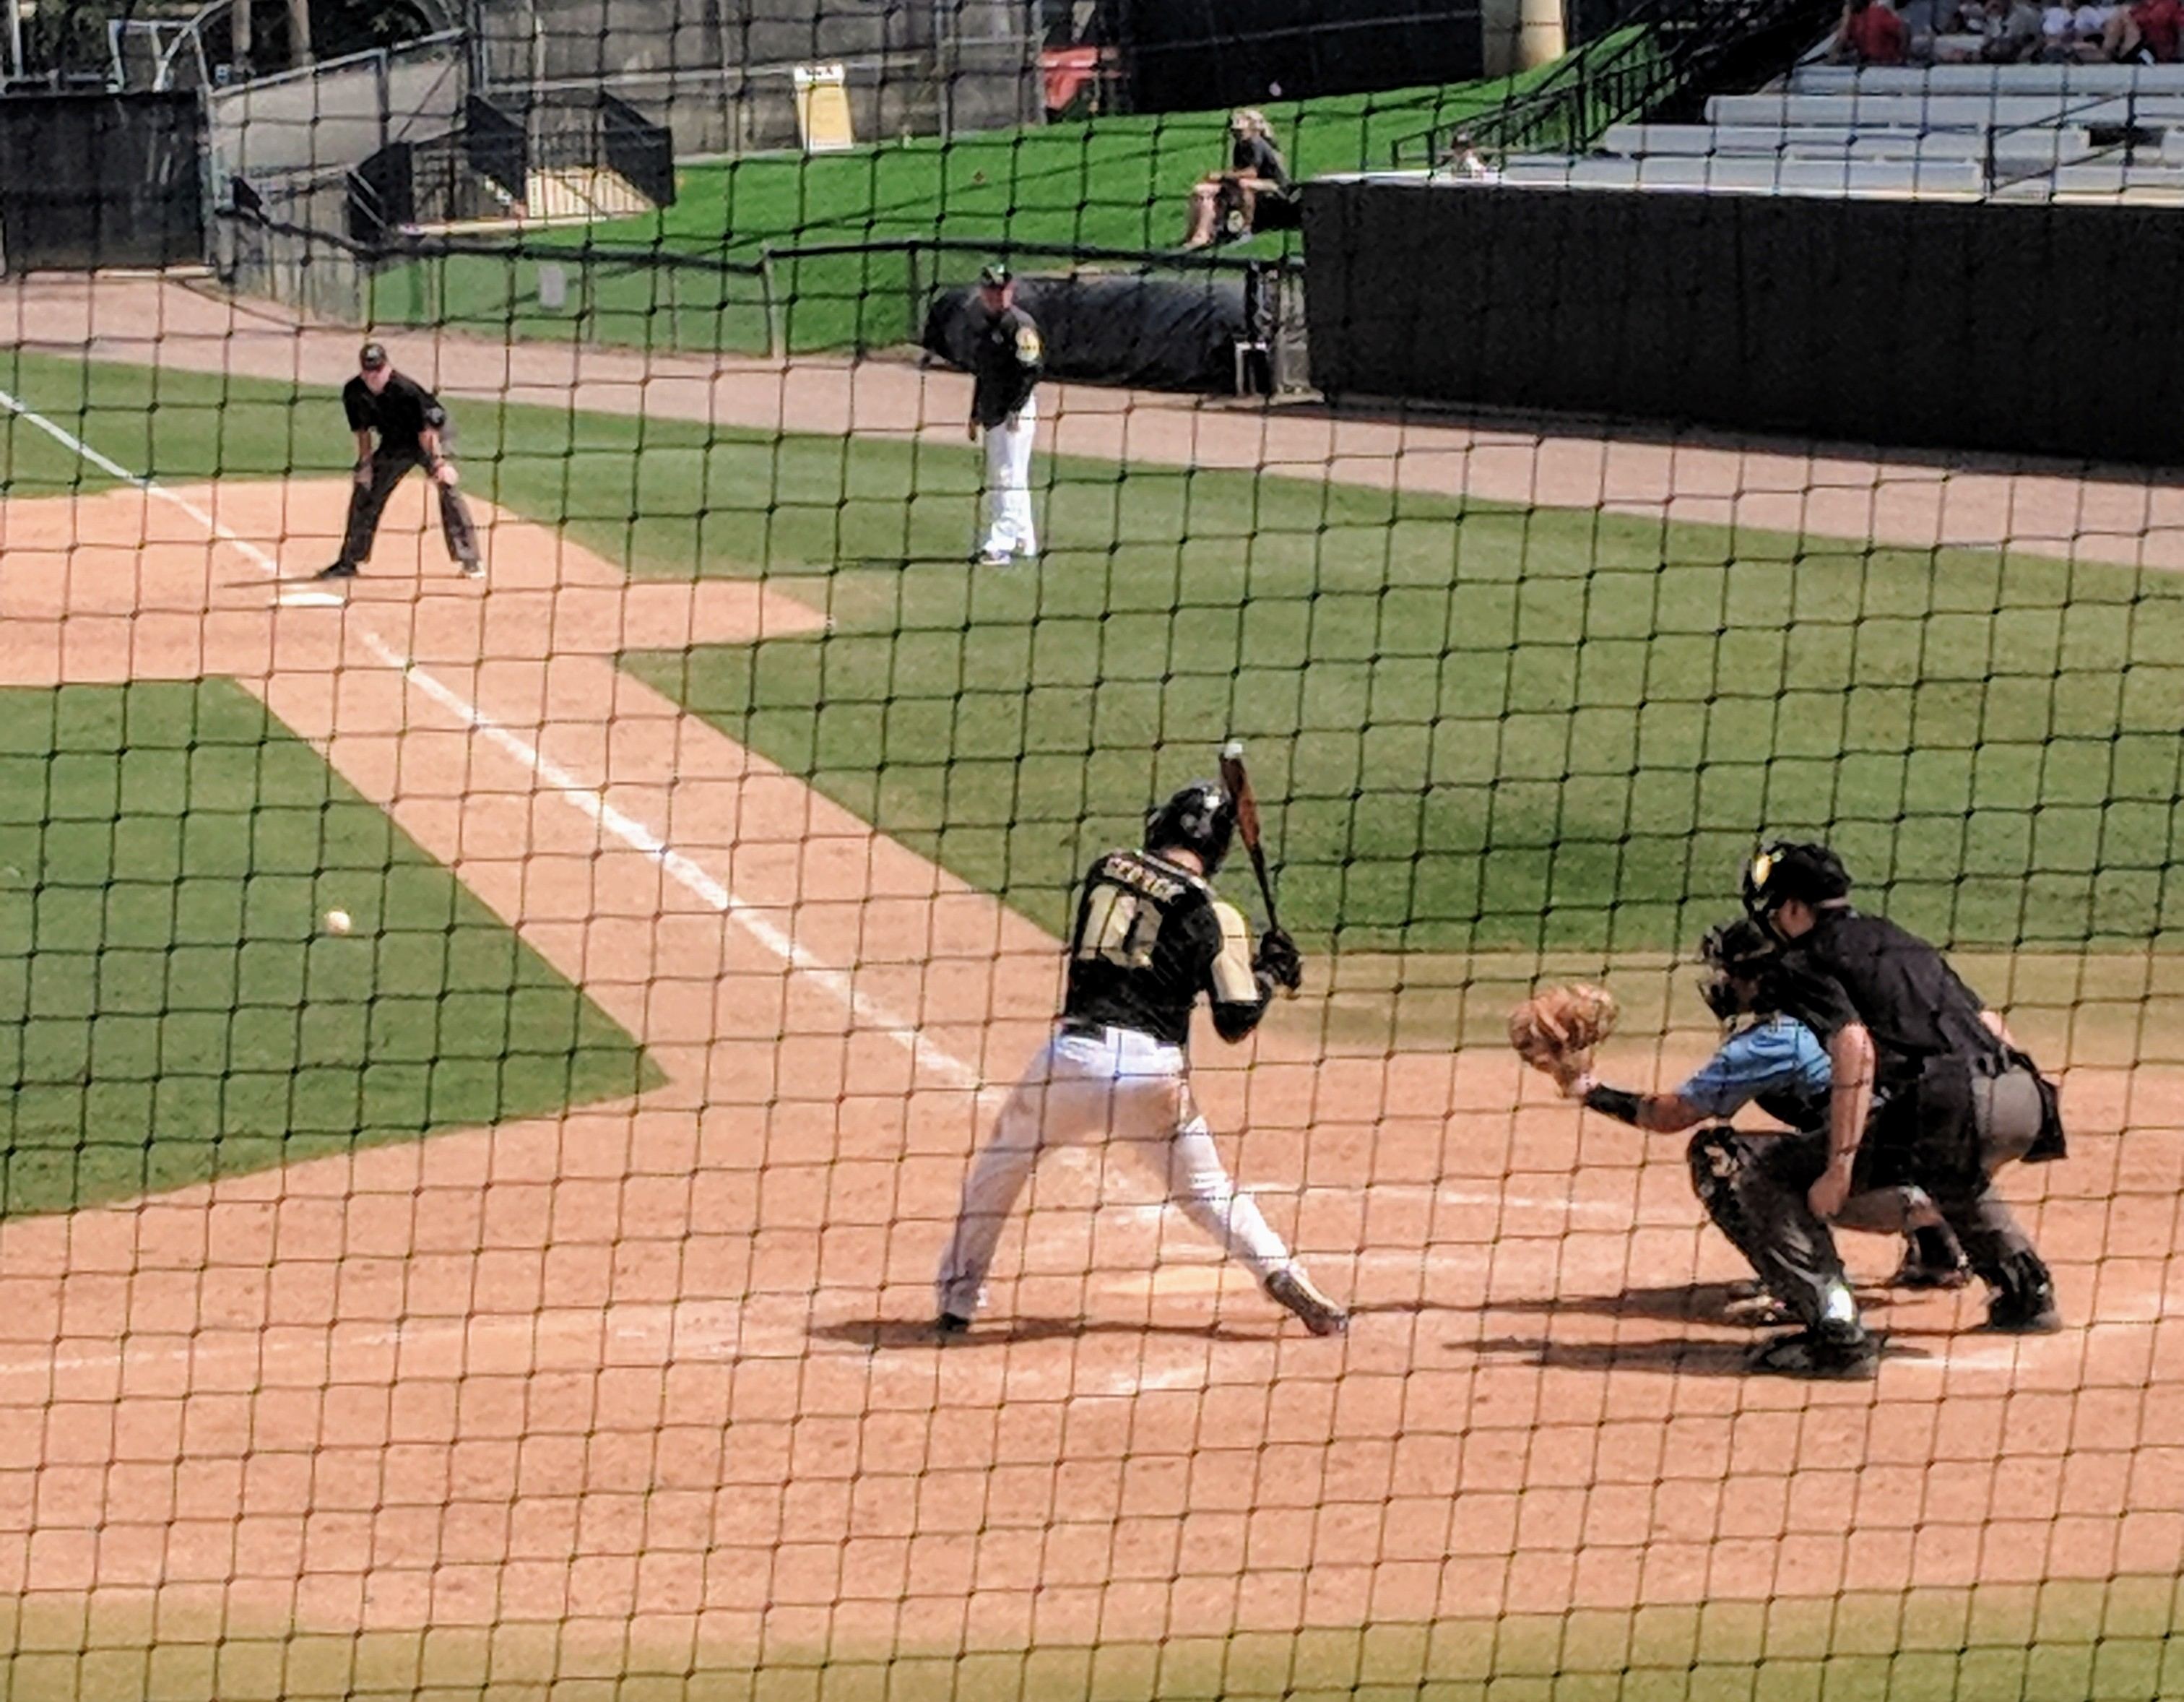 UCF catcher Anthony George takes a pitch during Sunday's game versus Seminole State. (Photo: Brian Murphy)